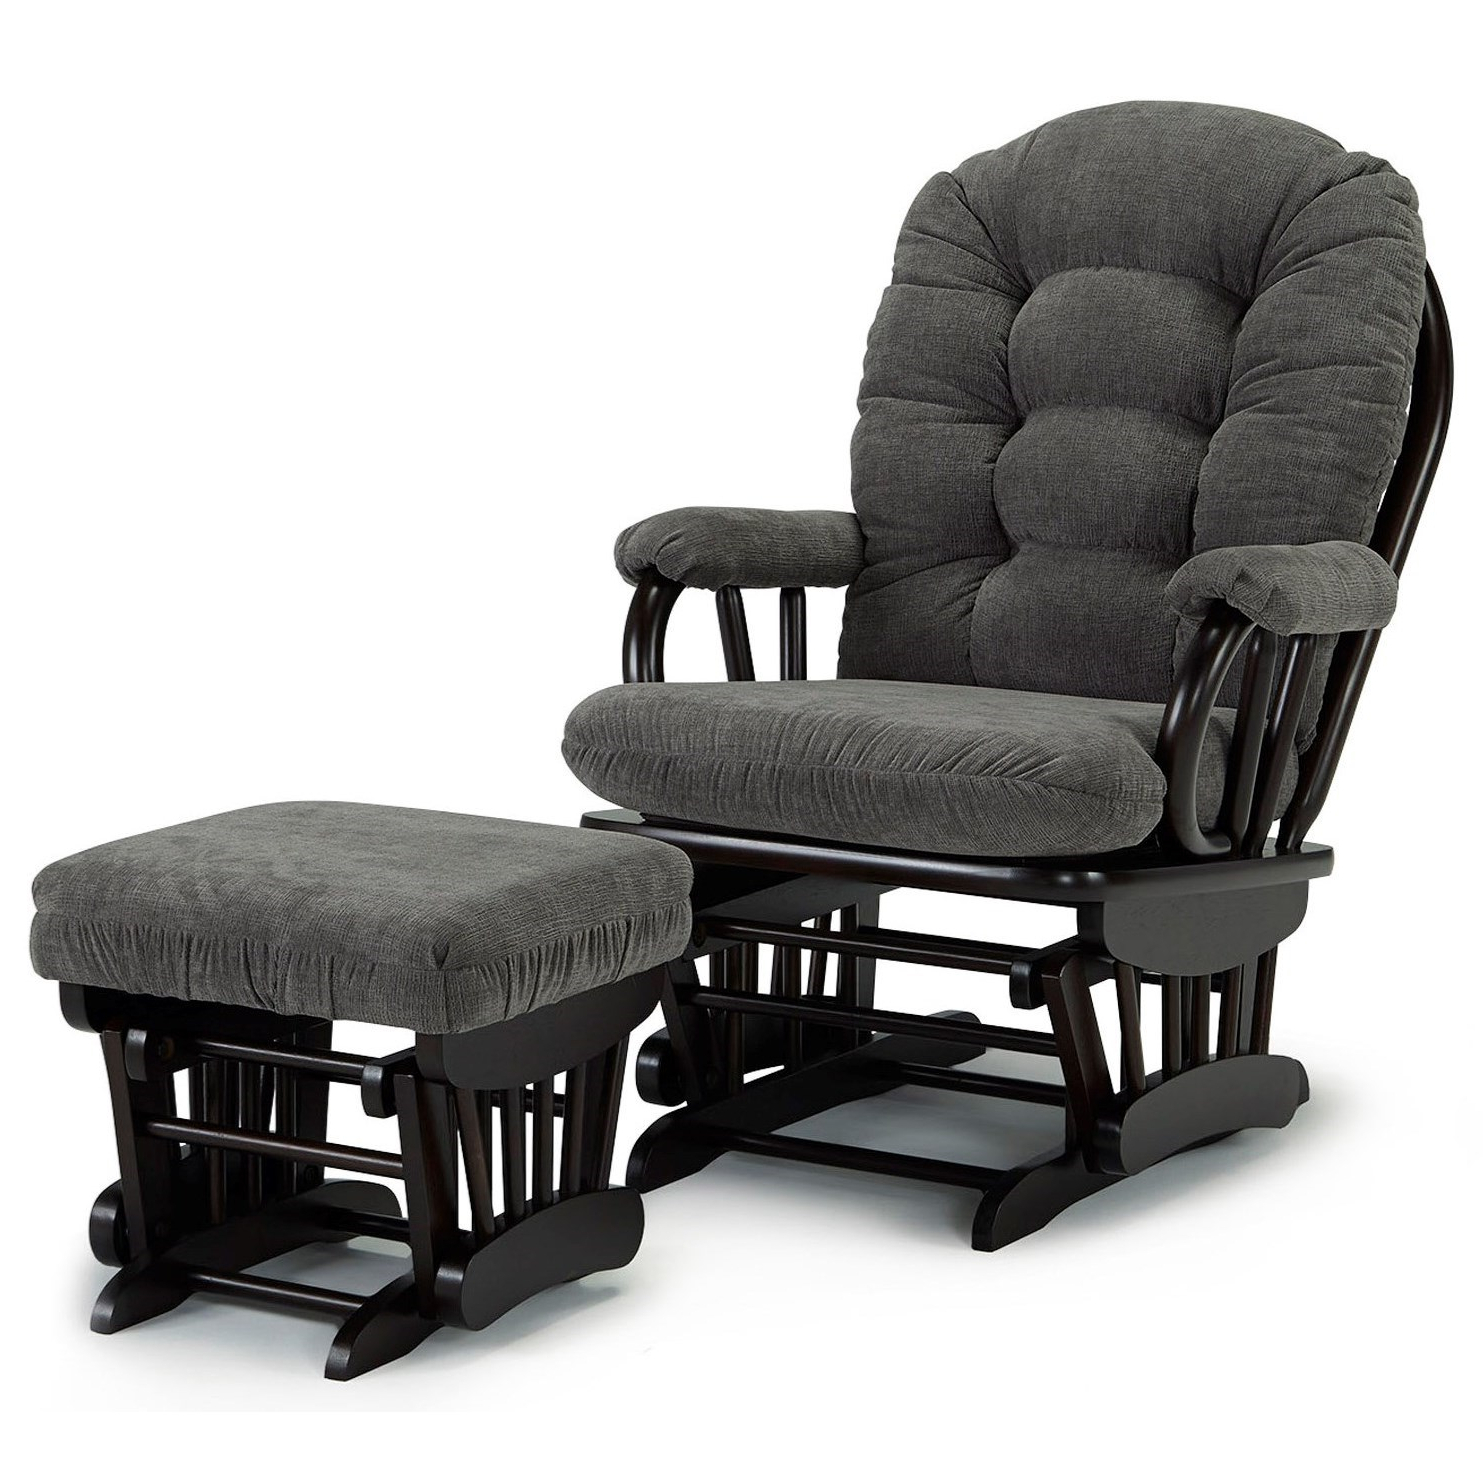 Best Home Furnishings Sona C4137+c0030 21523c Glider Chair Regarding Preferred Artemi Barrel Chair And Ottoman Sets (View 14 of 20)